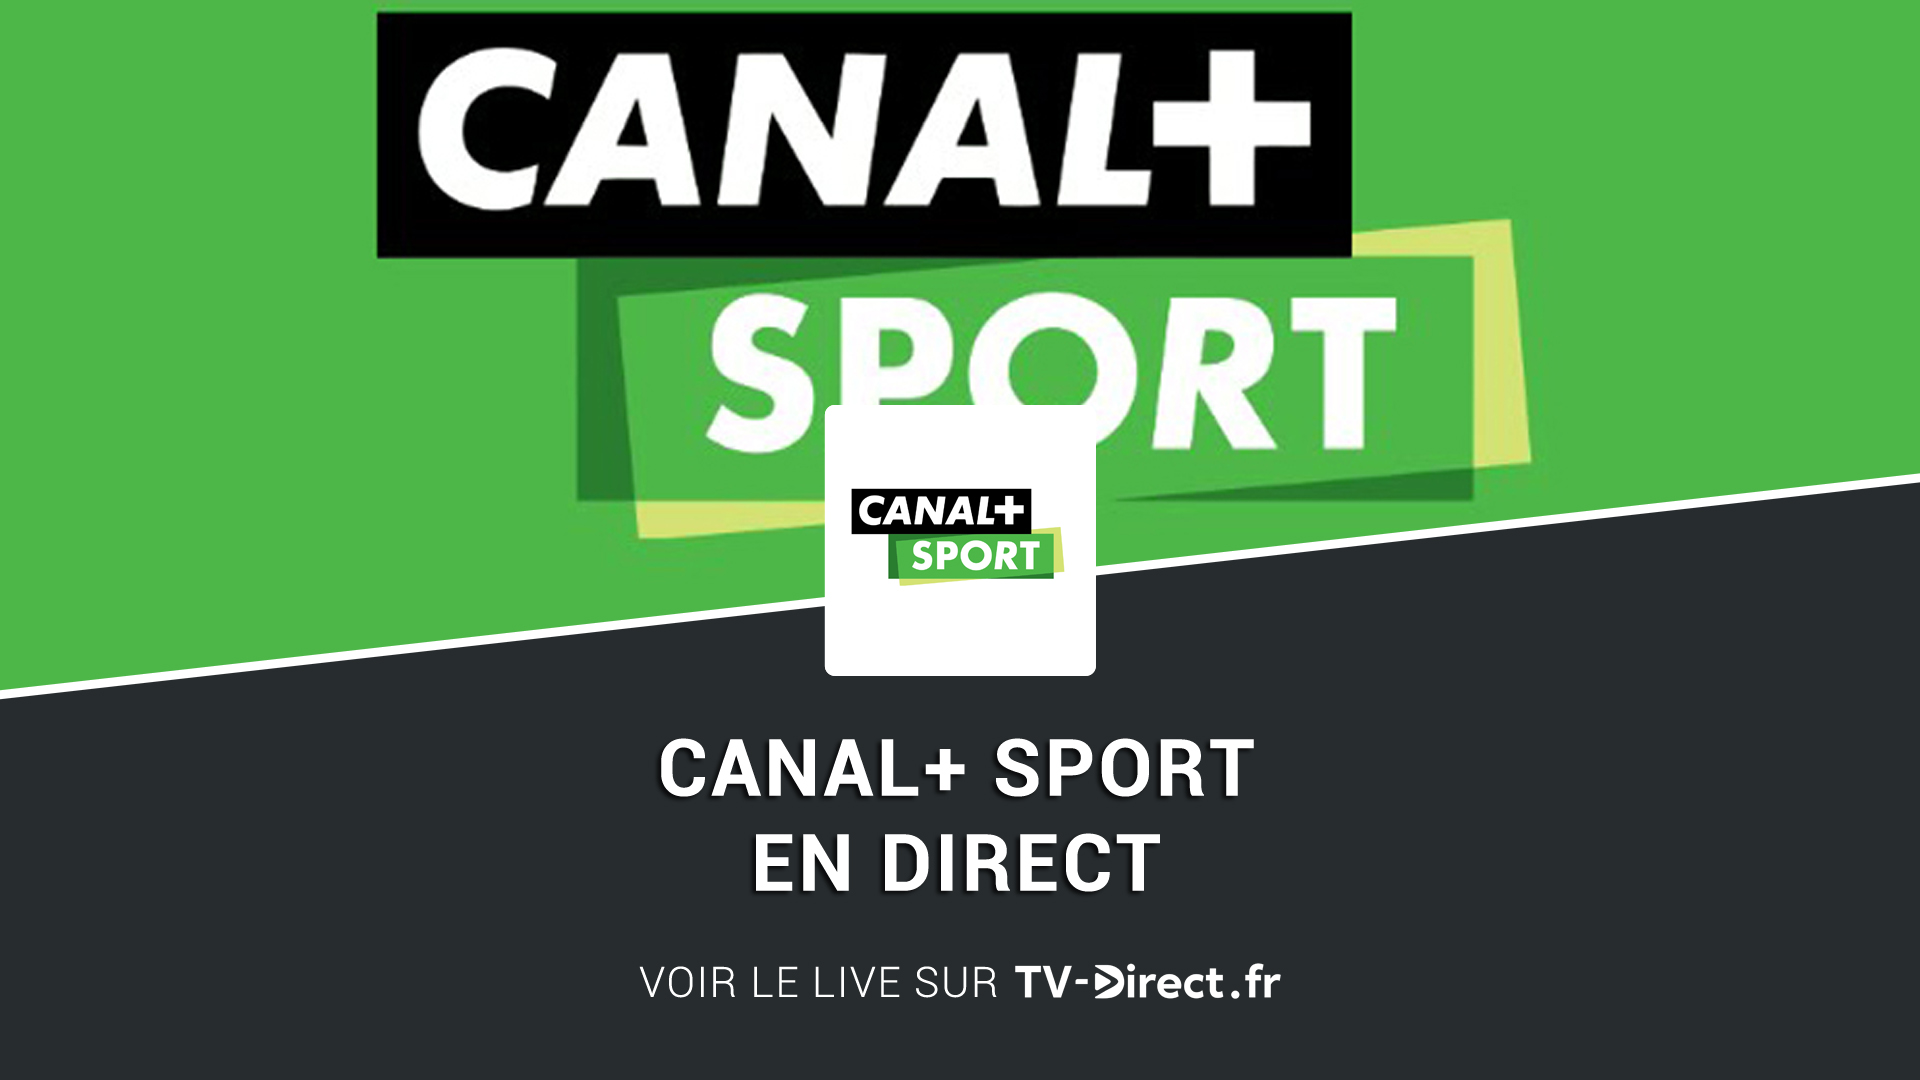 canal sport direct regarder canal sport streaming sur internet. Black Bedroom Furniture Sets. Home Design Ideas